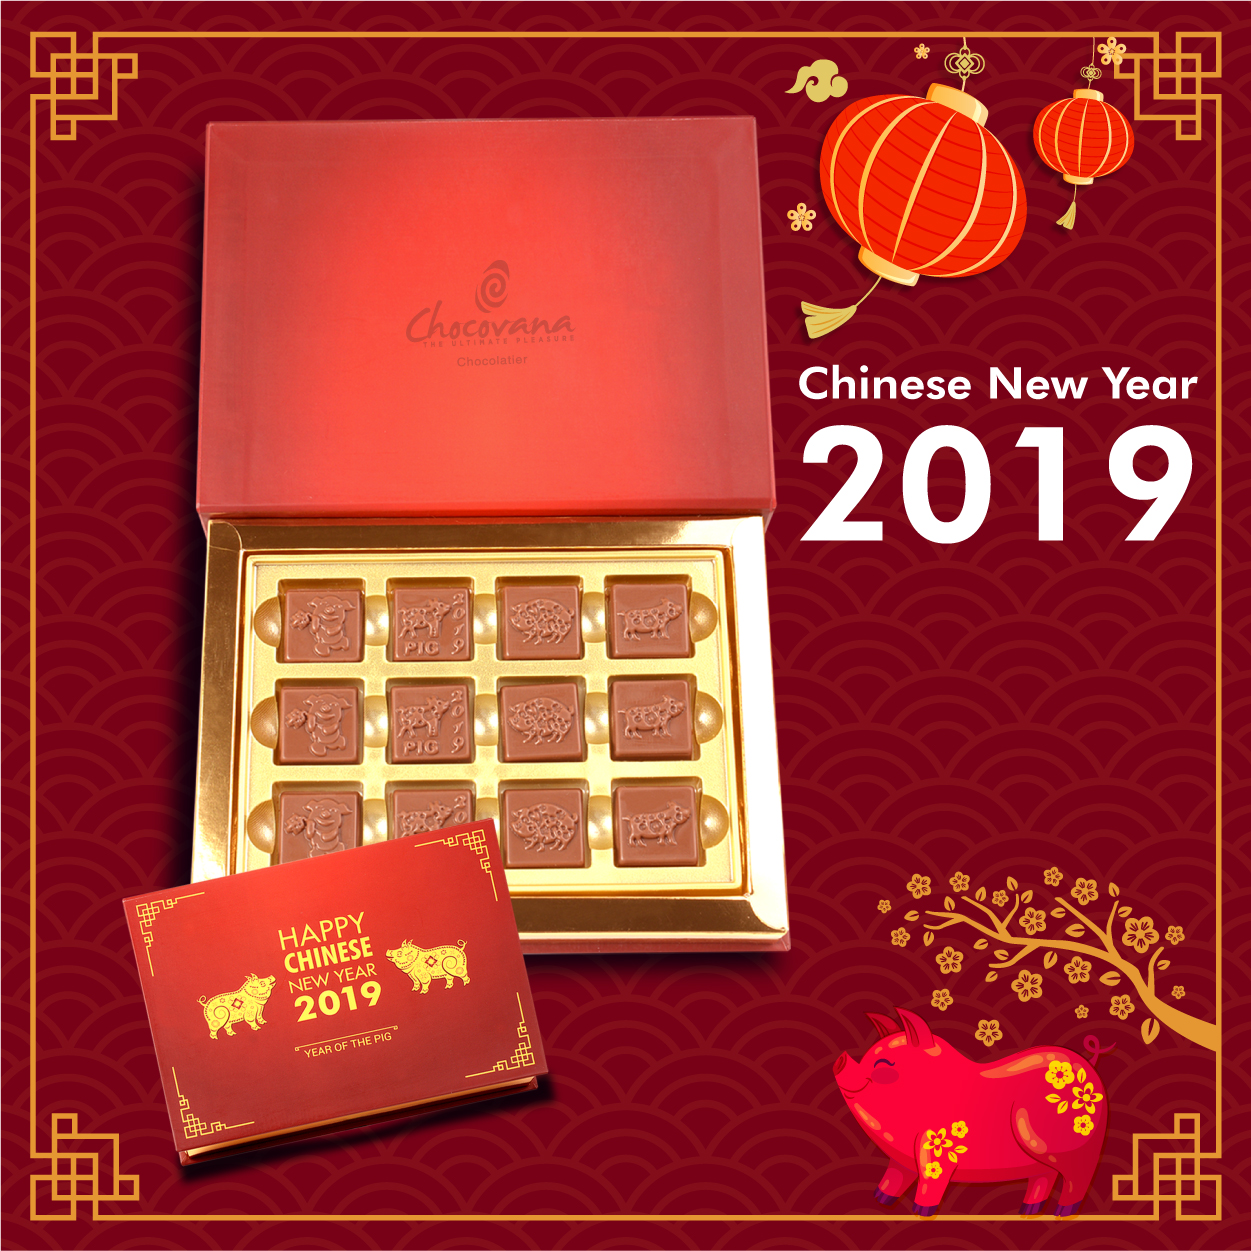 Chines New Year Insta Ad 1200 pxl-05-1